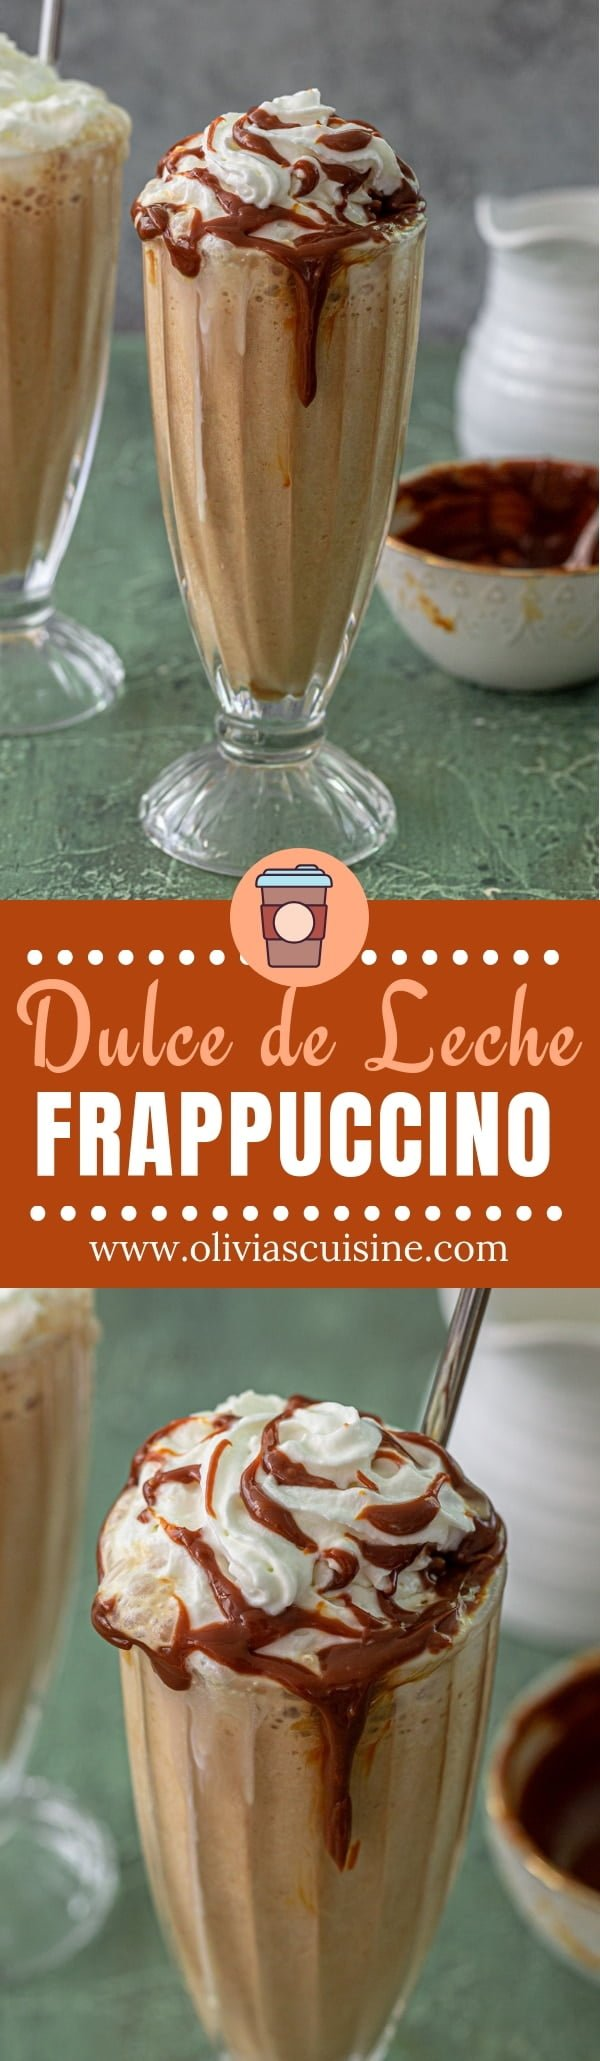 Dulce de Leche Frappuccino | www.oliviascuisine.com | This homemade Dulce de Leche Frappuccino is the best frappuccino you'll ever taste! Easy, creamy and oh so deliciously indulgent. Who needs a barista when you can make something this perfect at home? #frappuccino #dulcedeleche #caramel #coffee